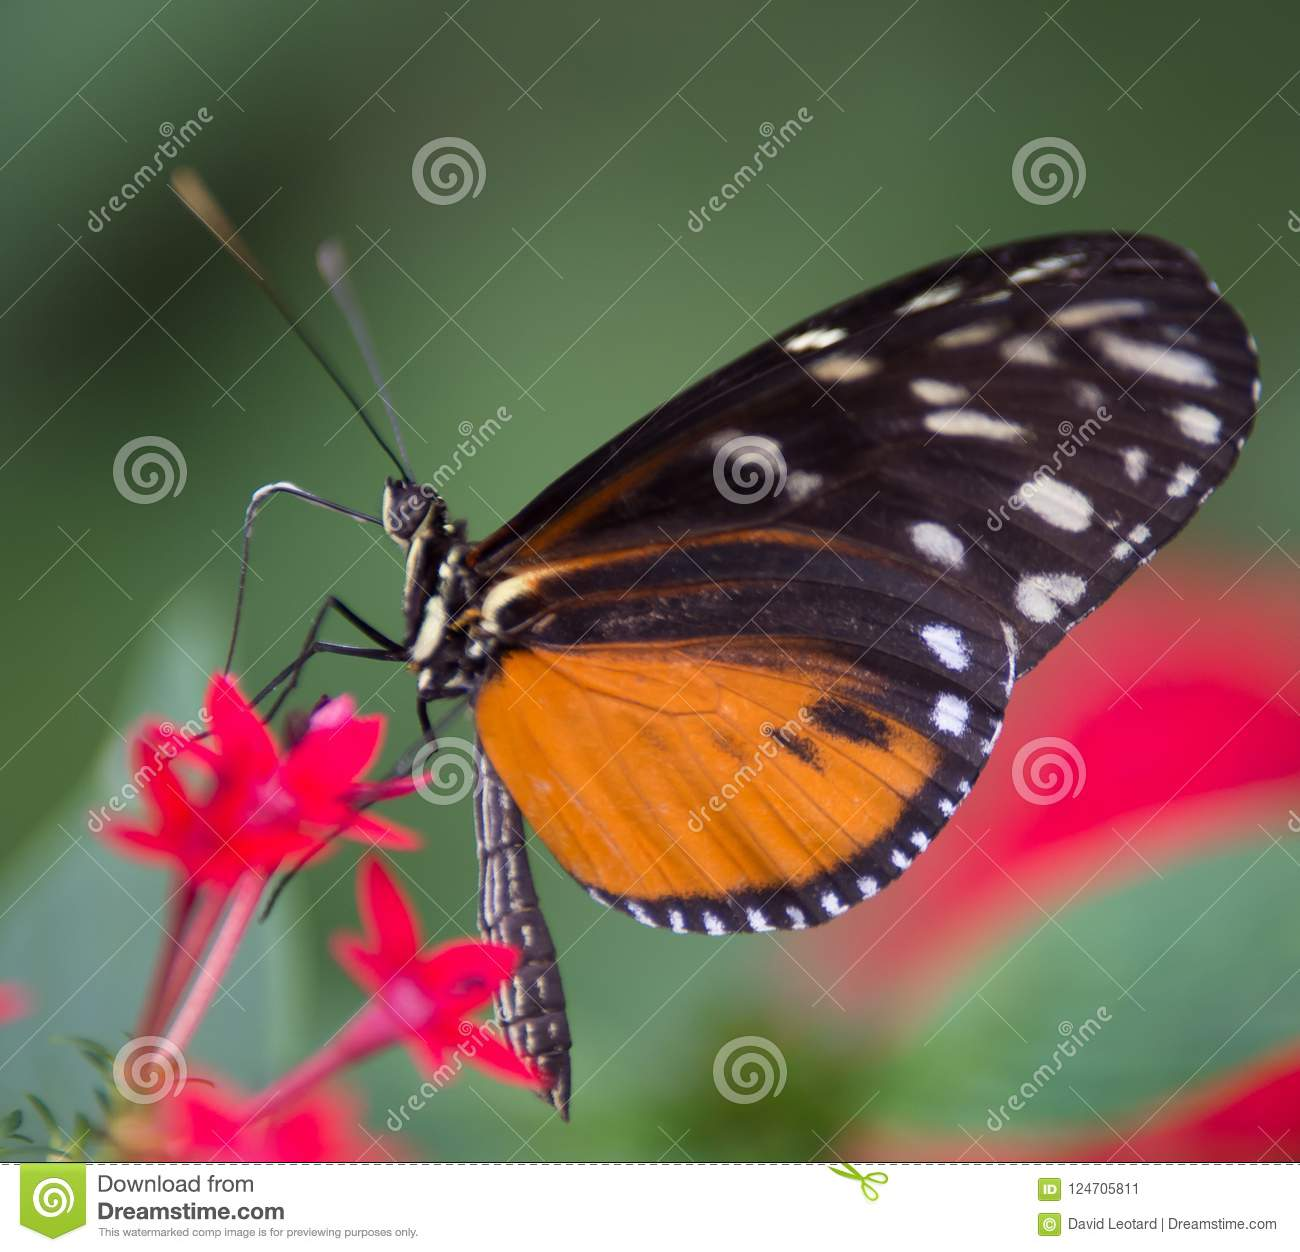 Black And White Orange Butterfly Resting On A Pink Flower On Green And Red Backgrounds Stock Image Image Of Black Posed 124705811